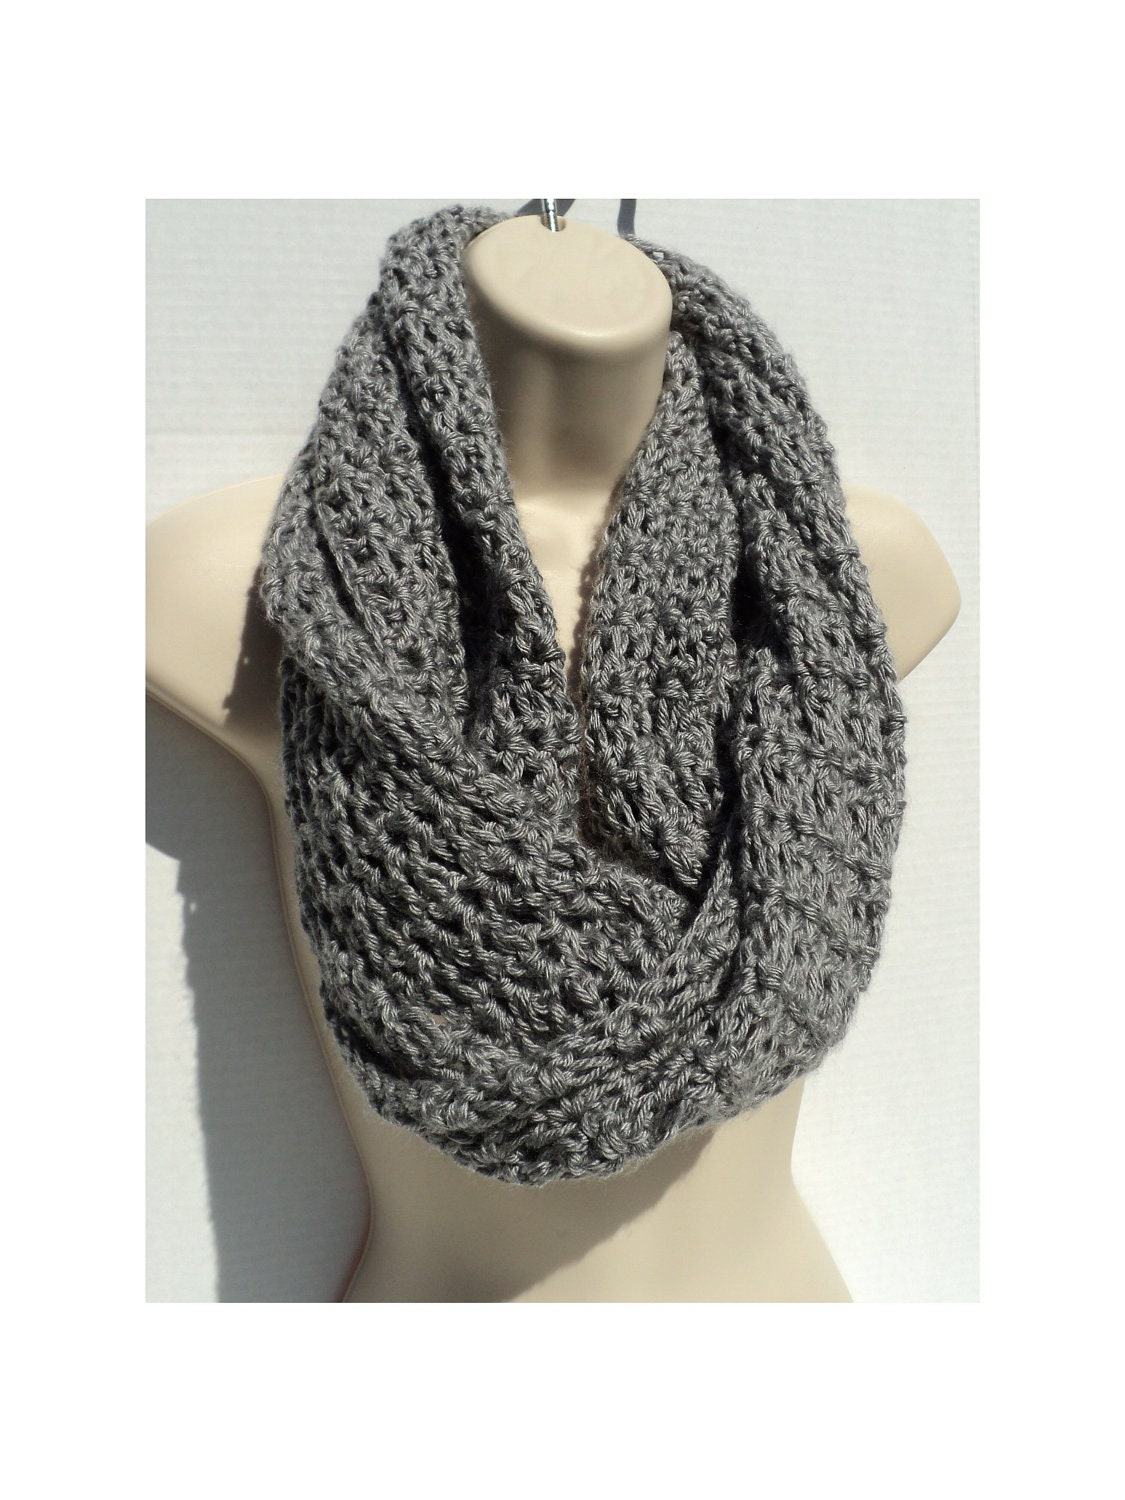 Crochet pattern simple elegance mobius cowl neck scarf zoom bankloansurffo Image collections